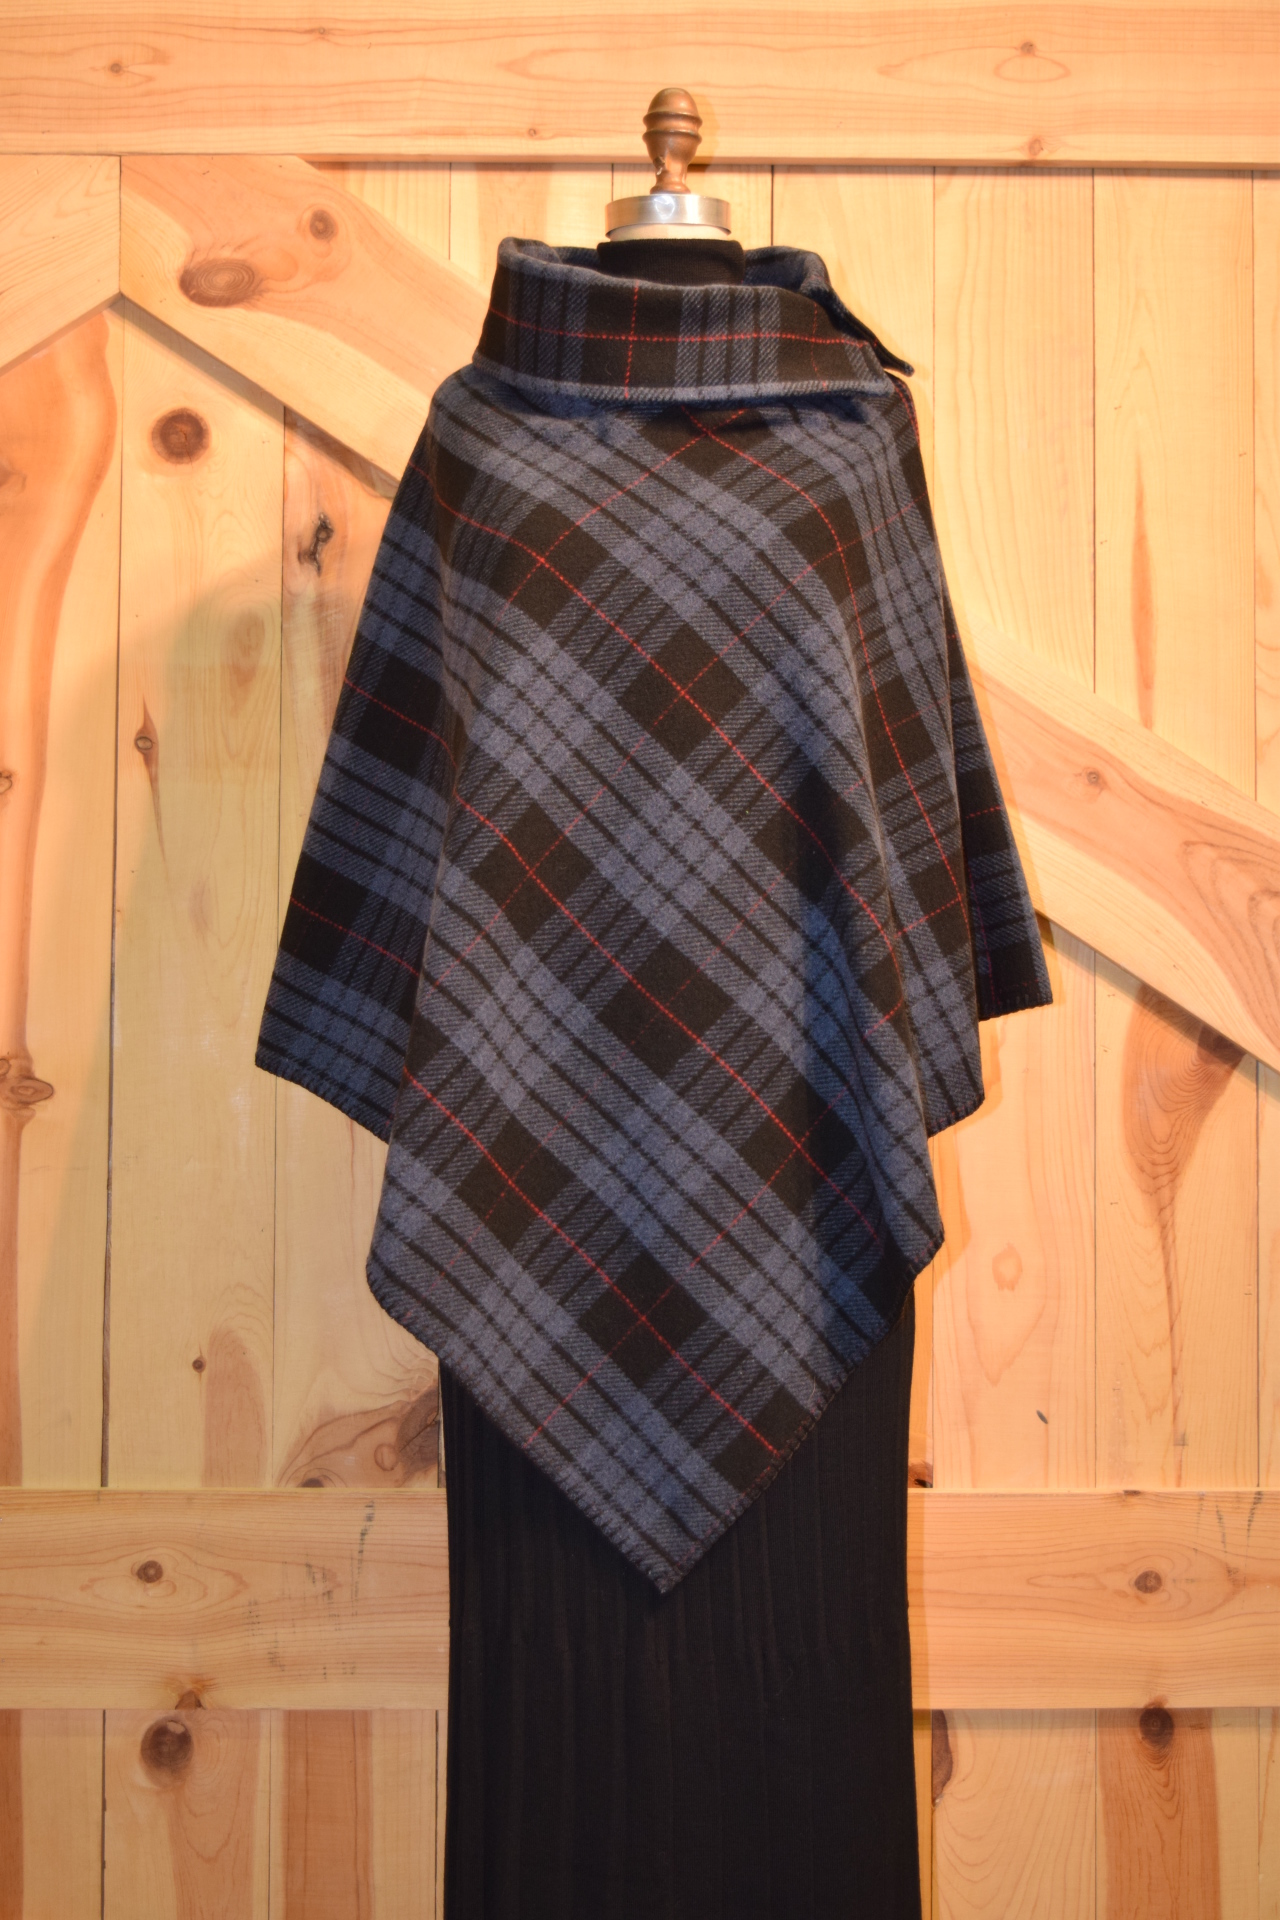 #208TPB - BLUE TARTAN PLAID BUTTON COLLAR PONCHO - $119.95 -- SALE $59.95